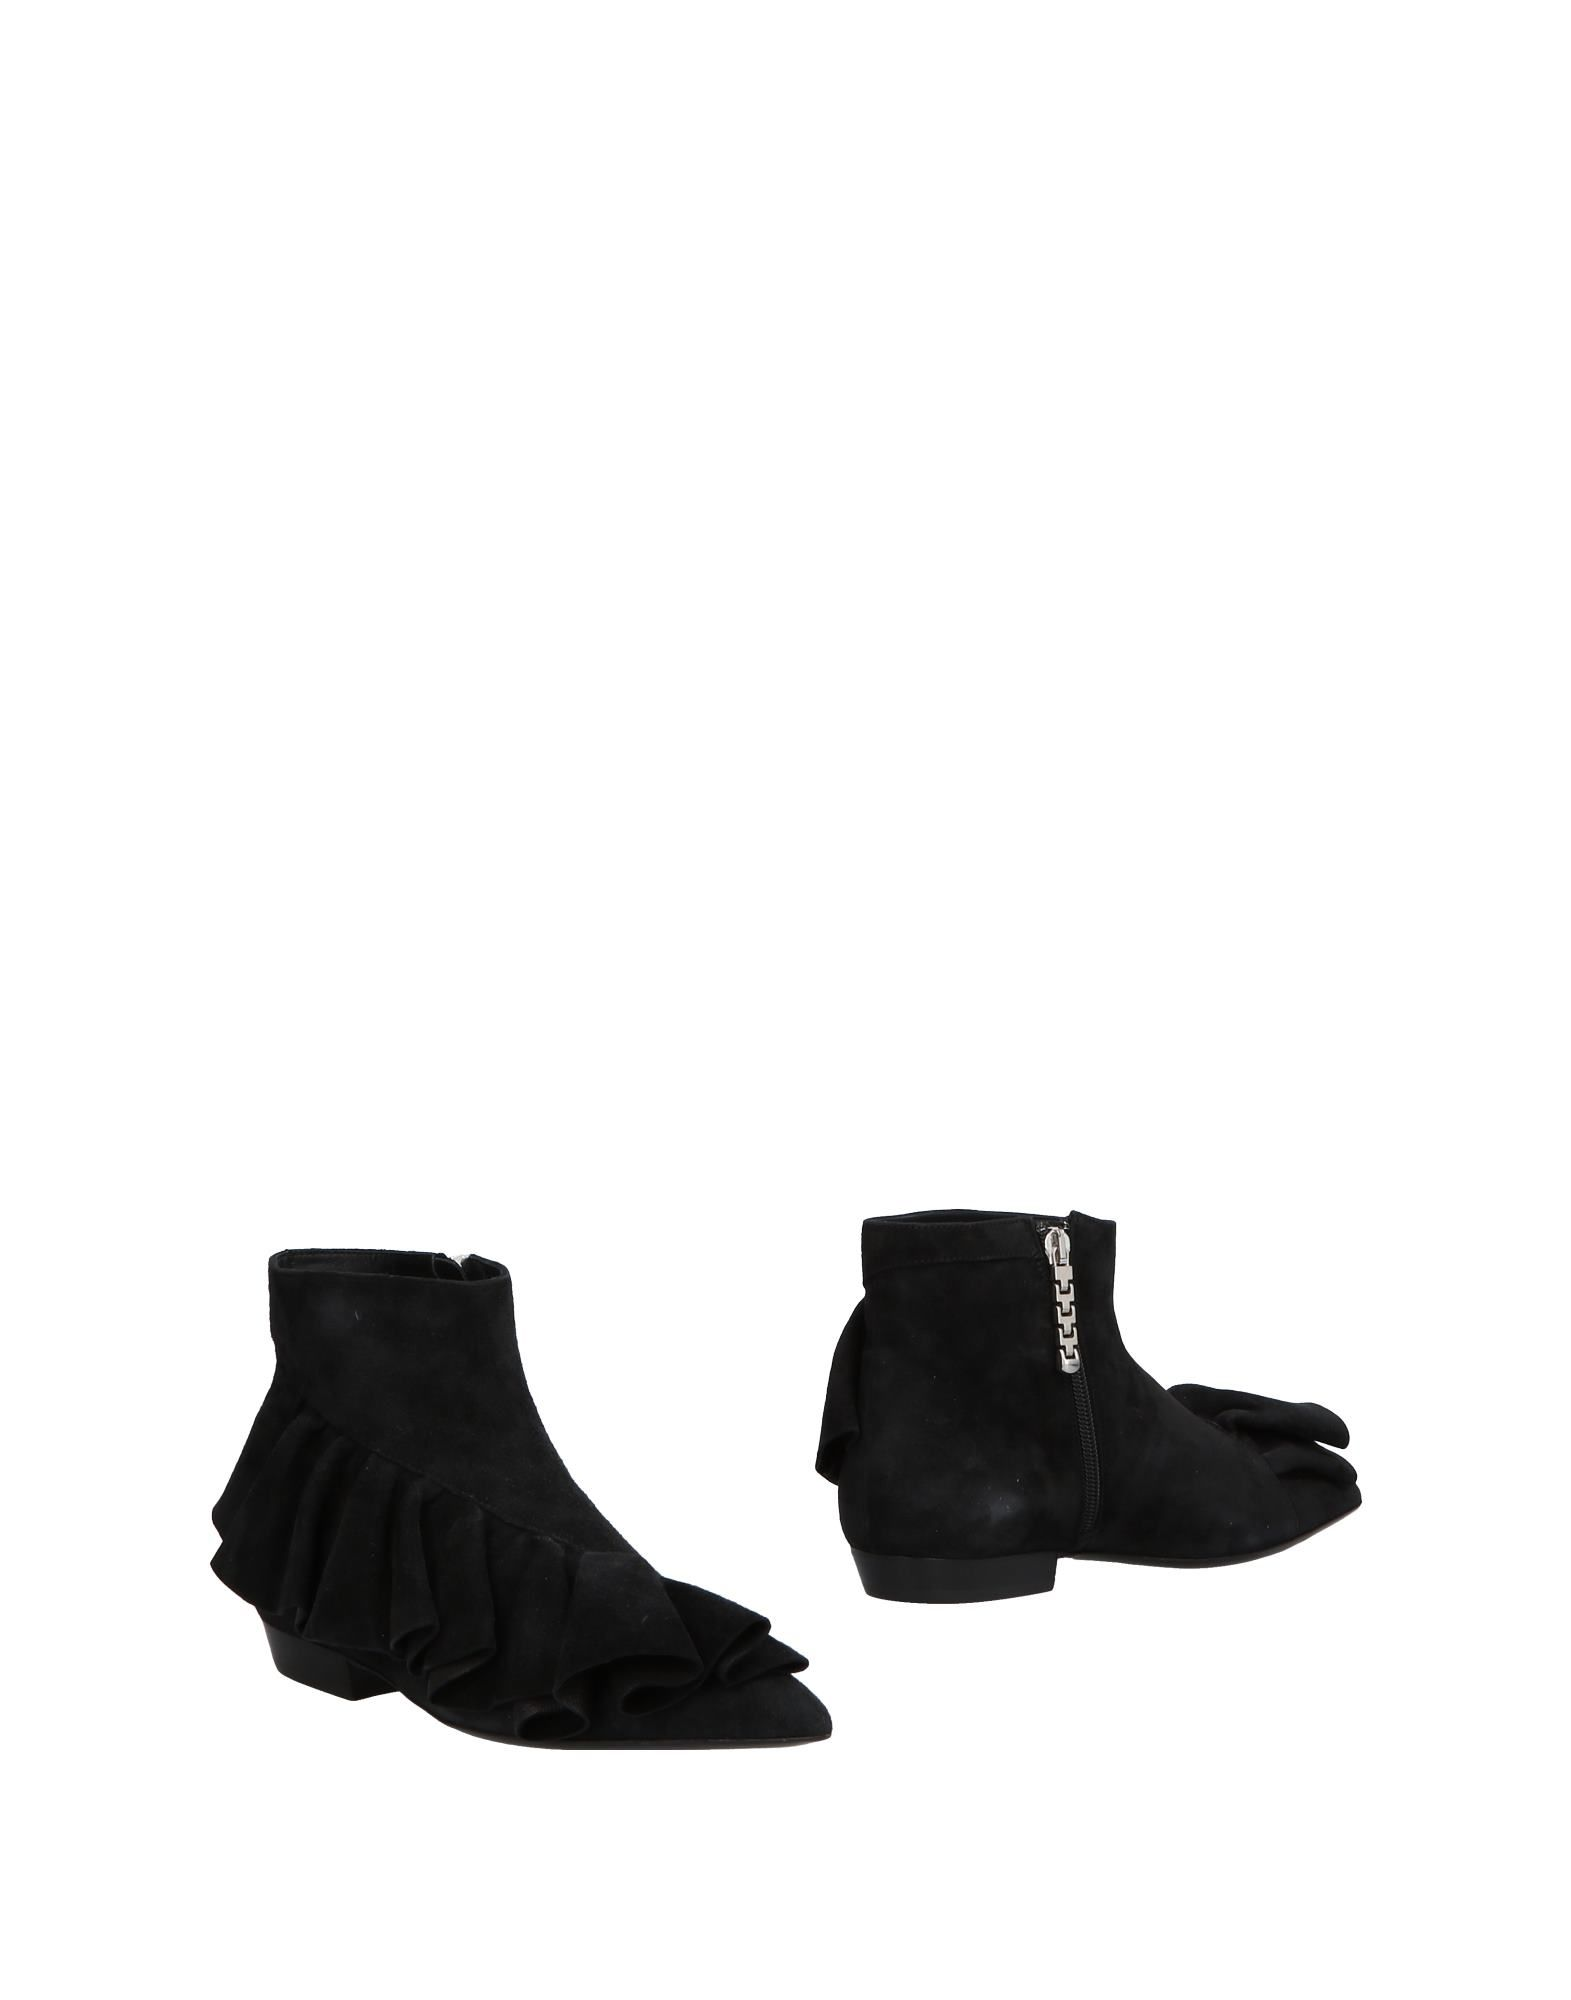 J.W.Anderson Ankle Boot - Women J.W.Anderson Ankle Boots online on 11503326VP  United Kingdom - 11503326VP on 534005